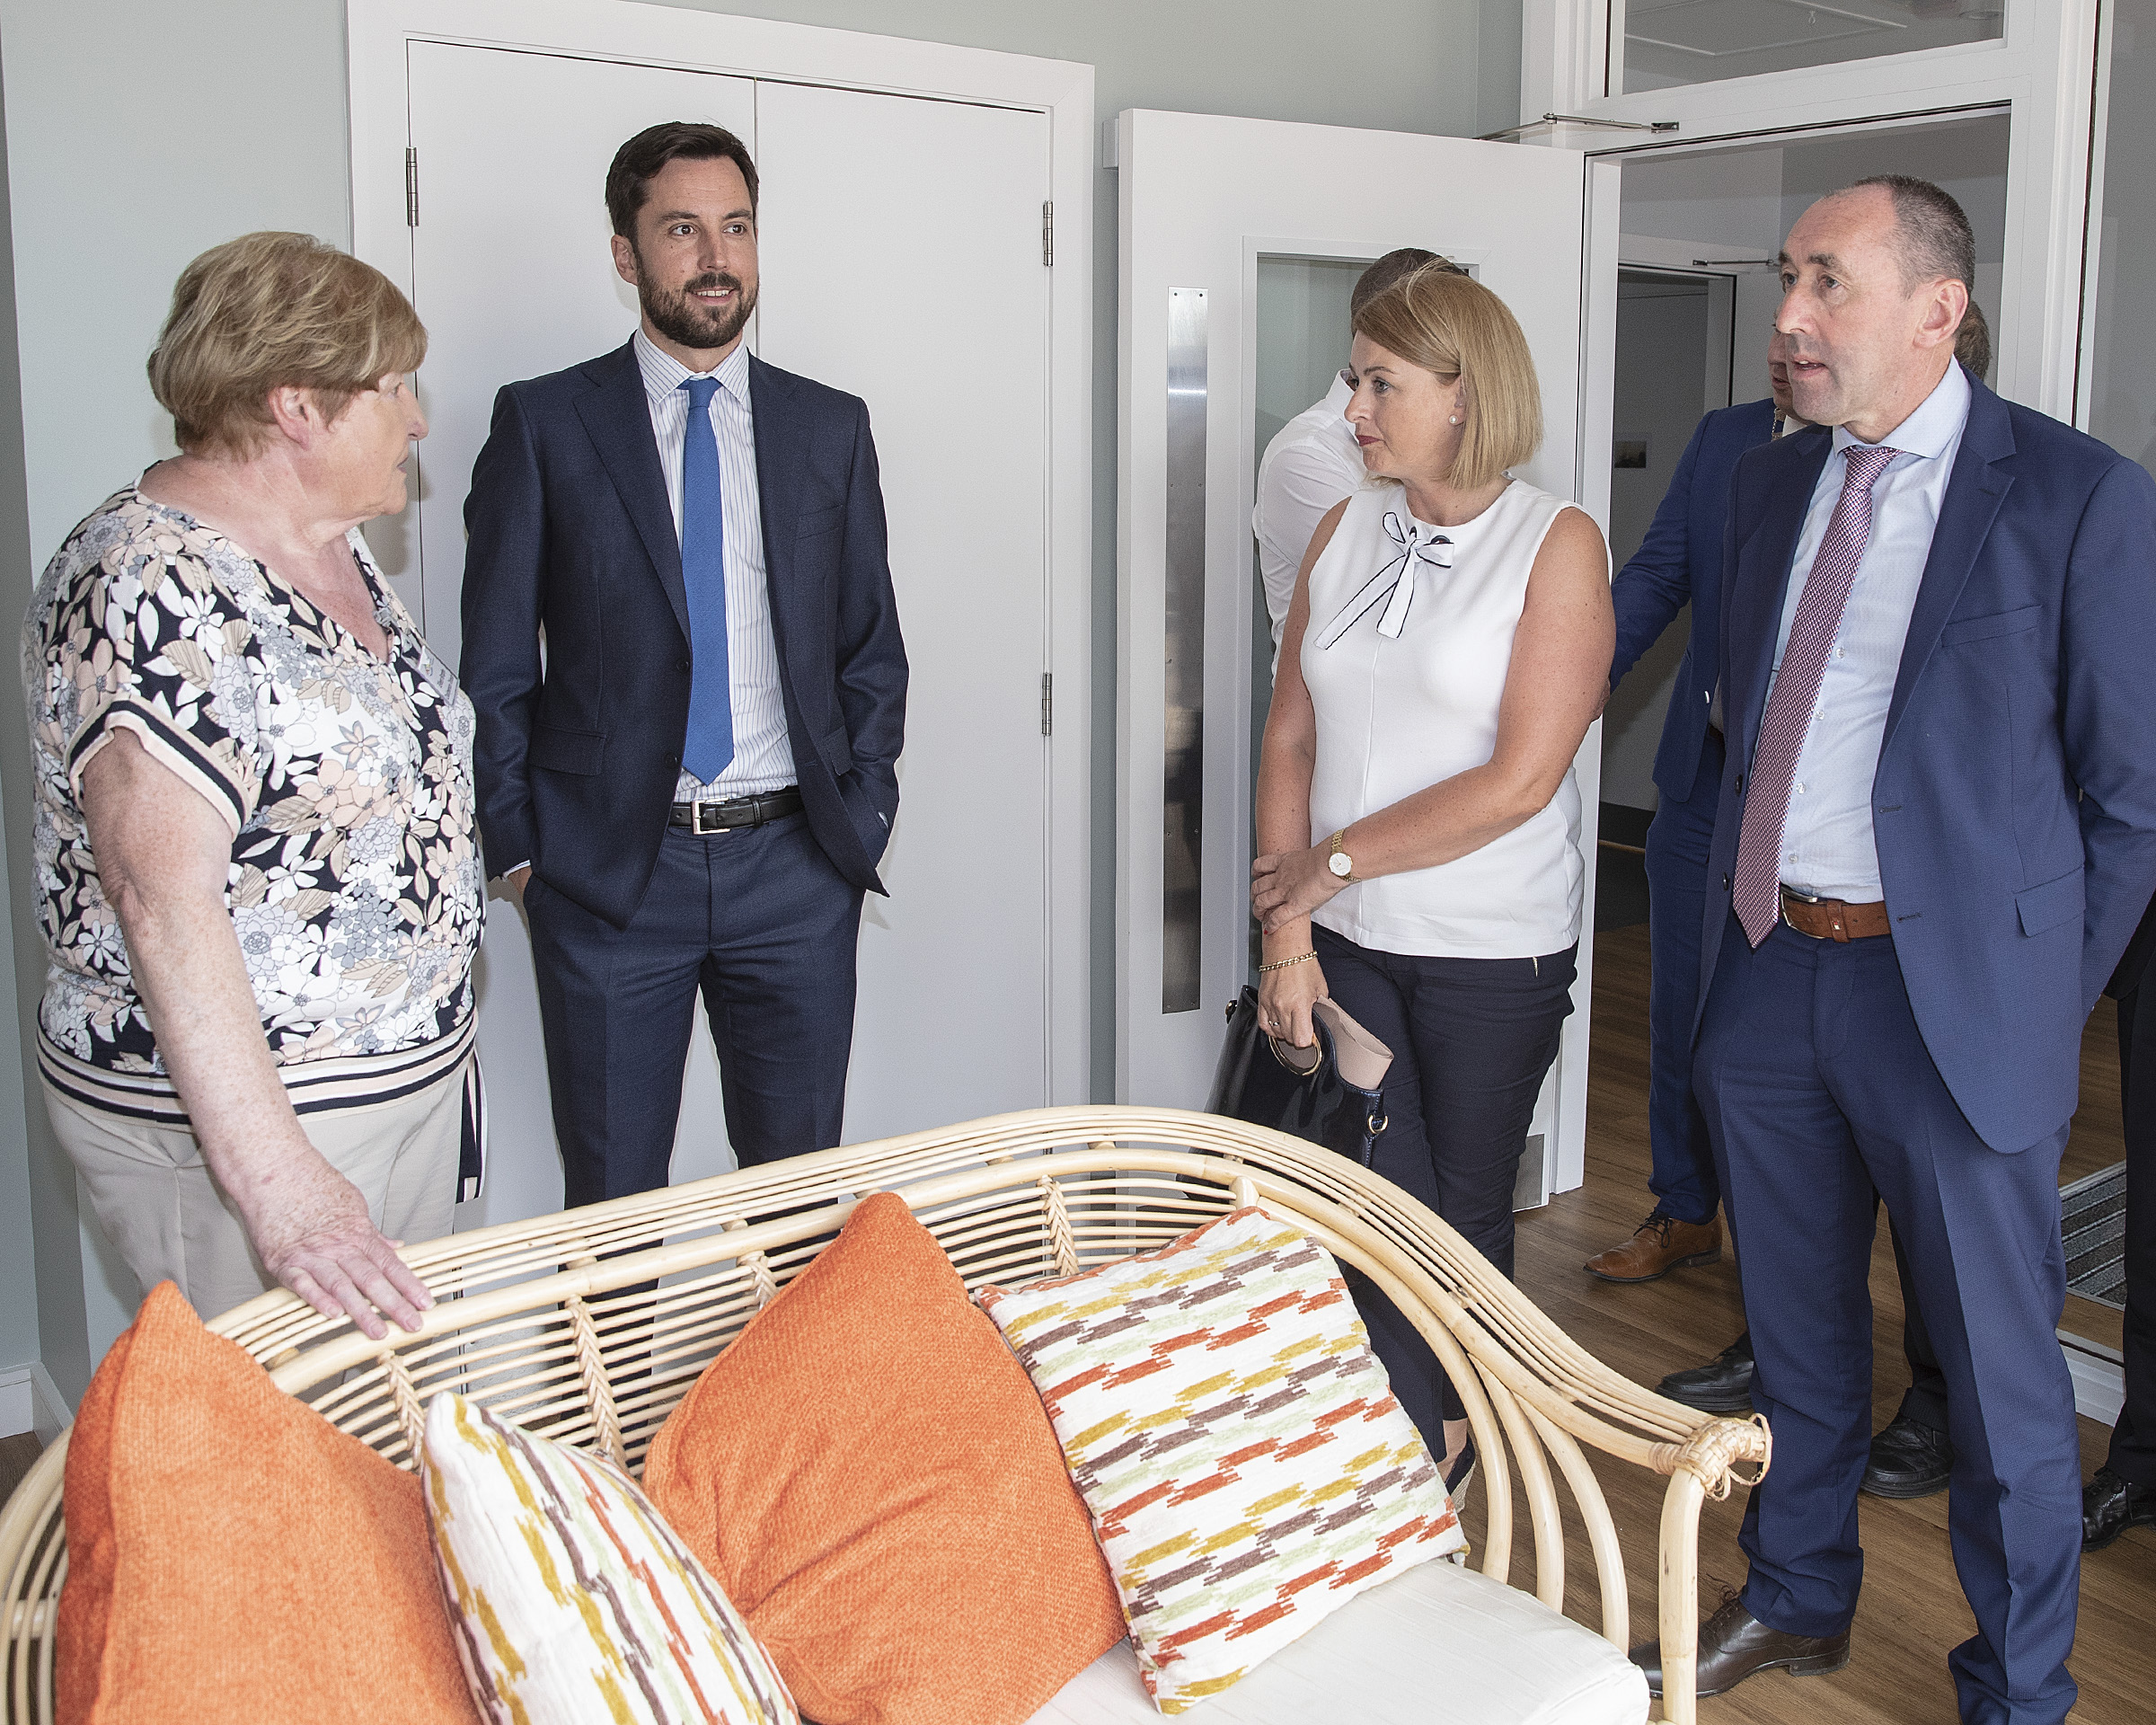 Eileen Brophy Chairperson Tinteán shows Eoghan Murphy TD, Aoife Fitzgerald Disability Manager HSE Area 5 and Pat Deering TD around the Tinteán Willow residents. Photo: Thomas Nolan Photography.